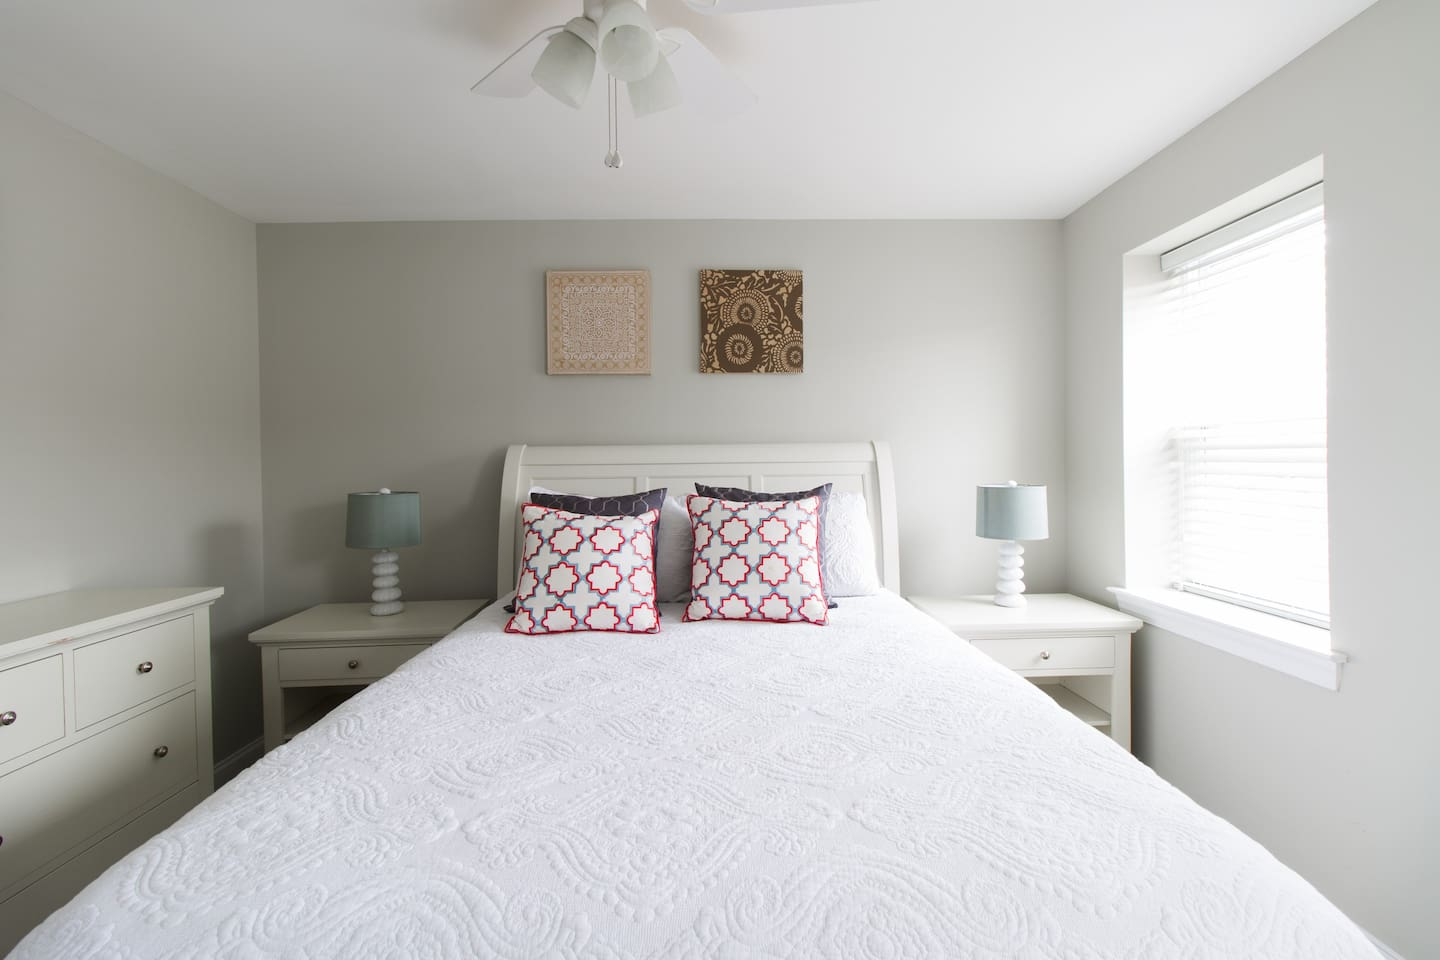 Master bedroom is the most comfortable place to relax after a day around Philly. Queen bed fits 2.